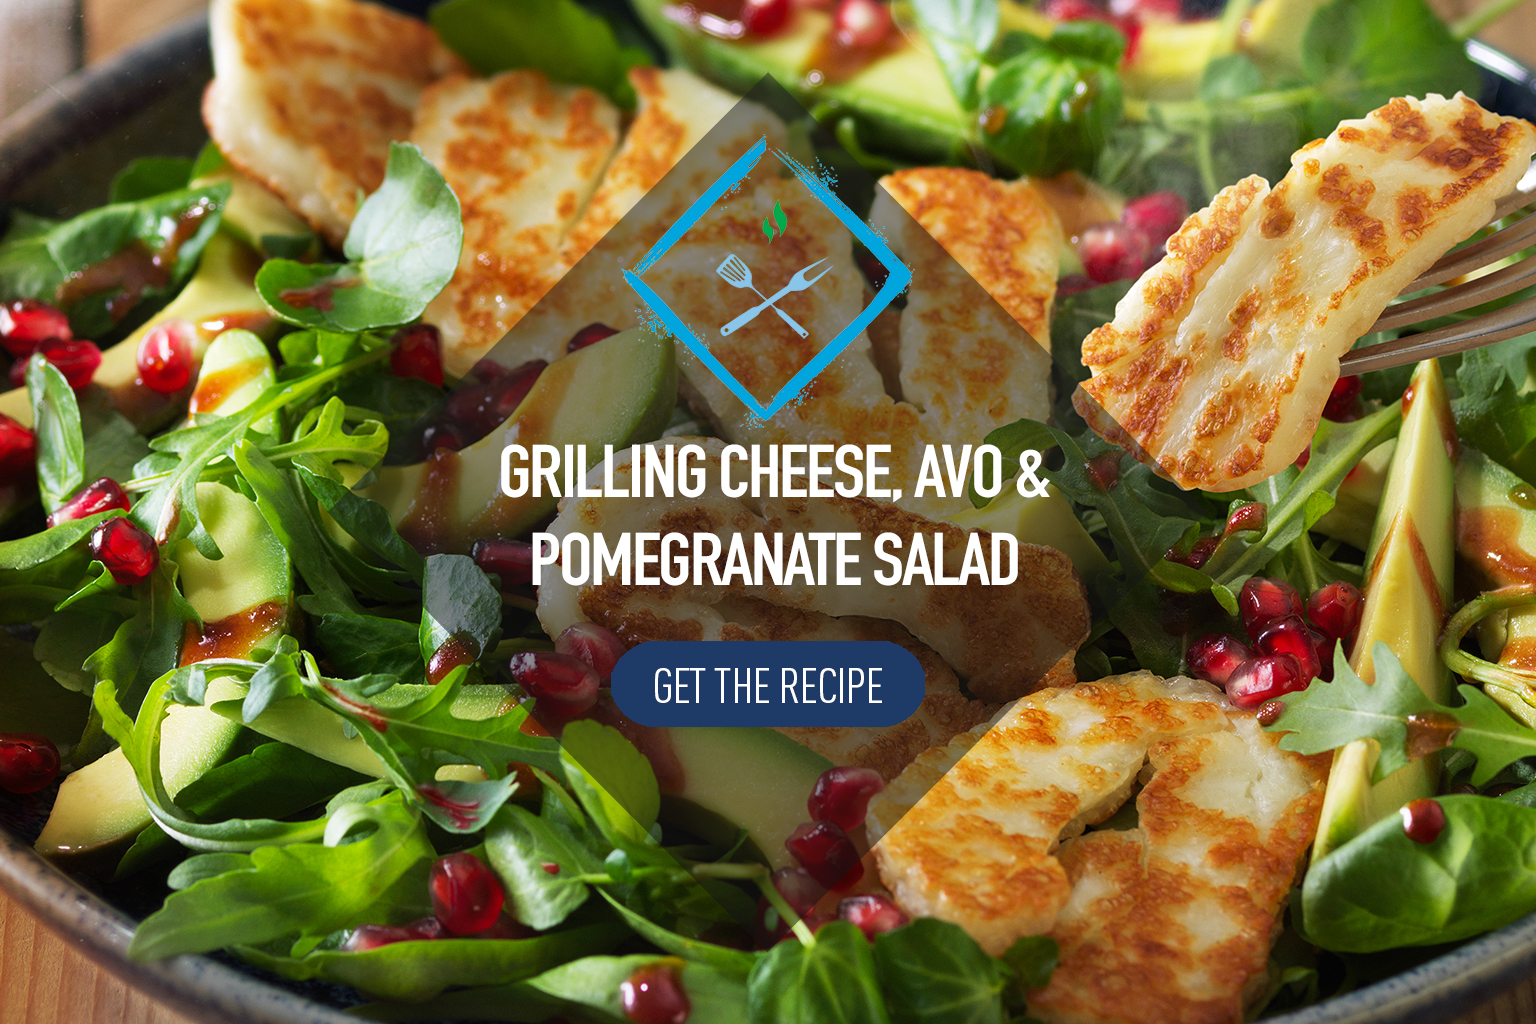 Grilling Cheese Salad with avocado and pomegranate